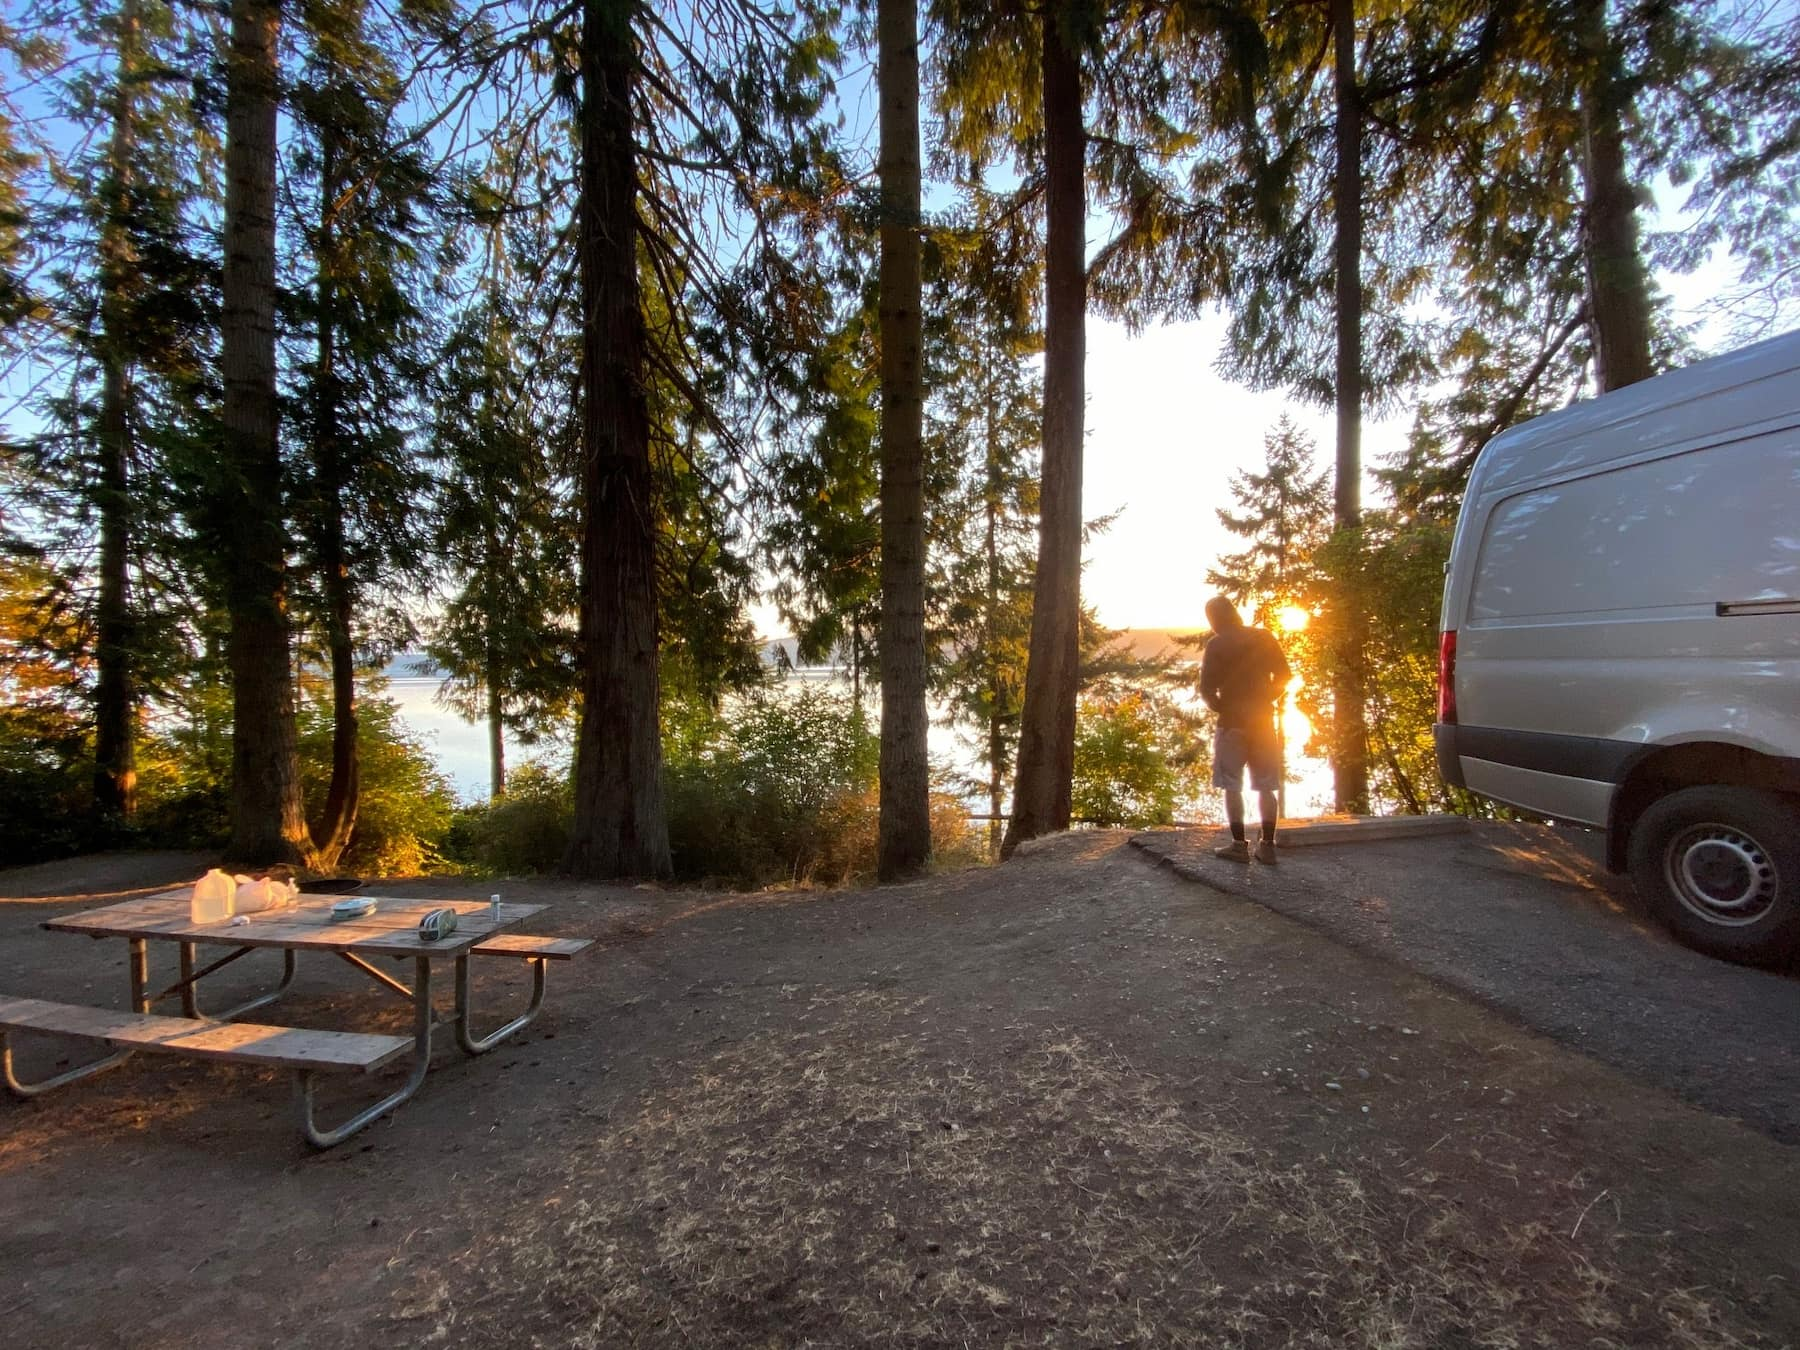 Sunset glow through the forest at a campground in the Olympic Peninsula.